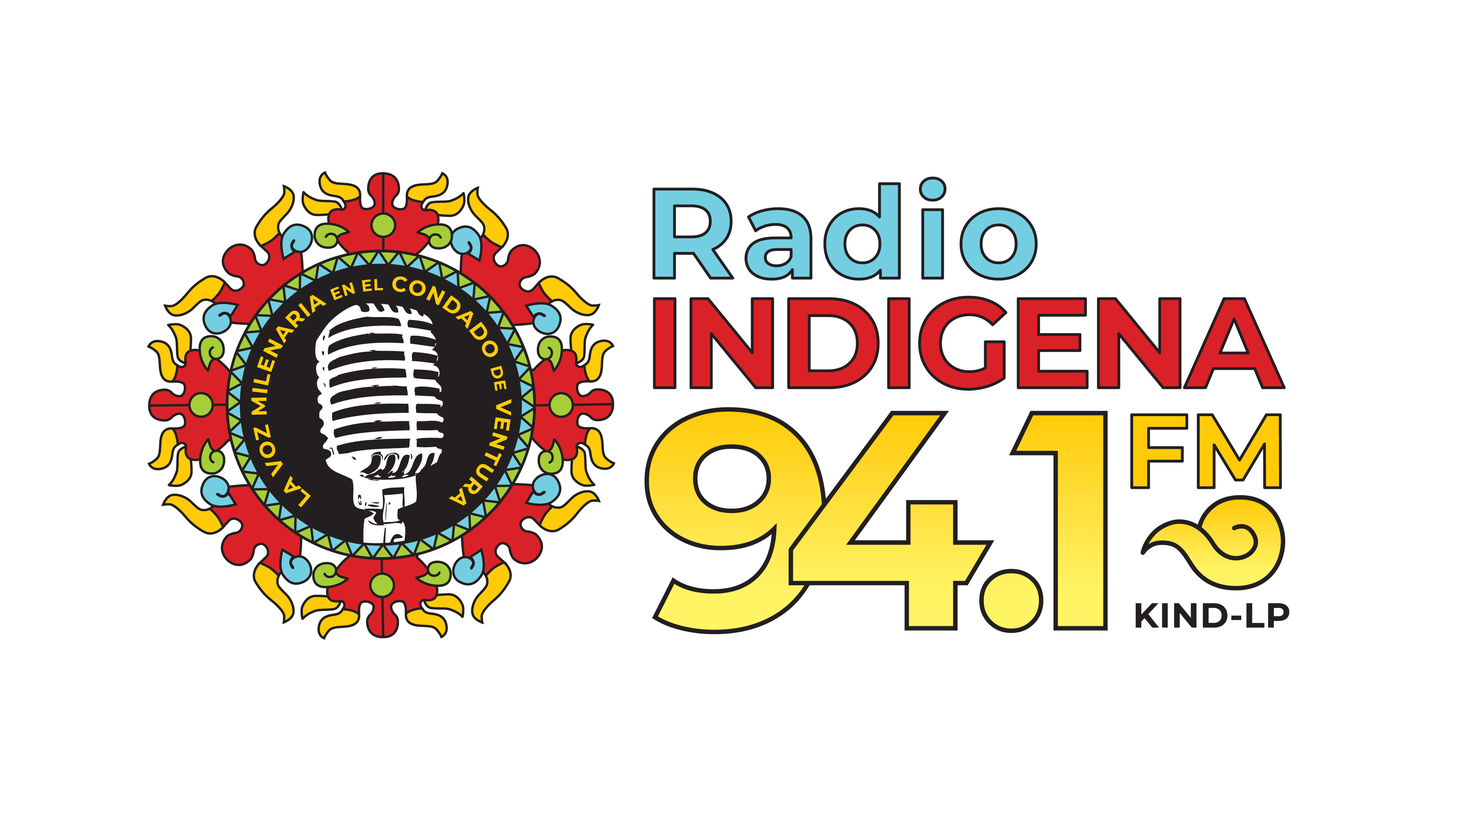 Radio Indigena has shows in languages such as Mixteco, Zapoteco, and Purépecha. It broadcasts to thousands of listeners daily.